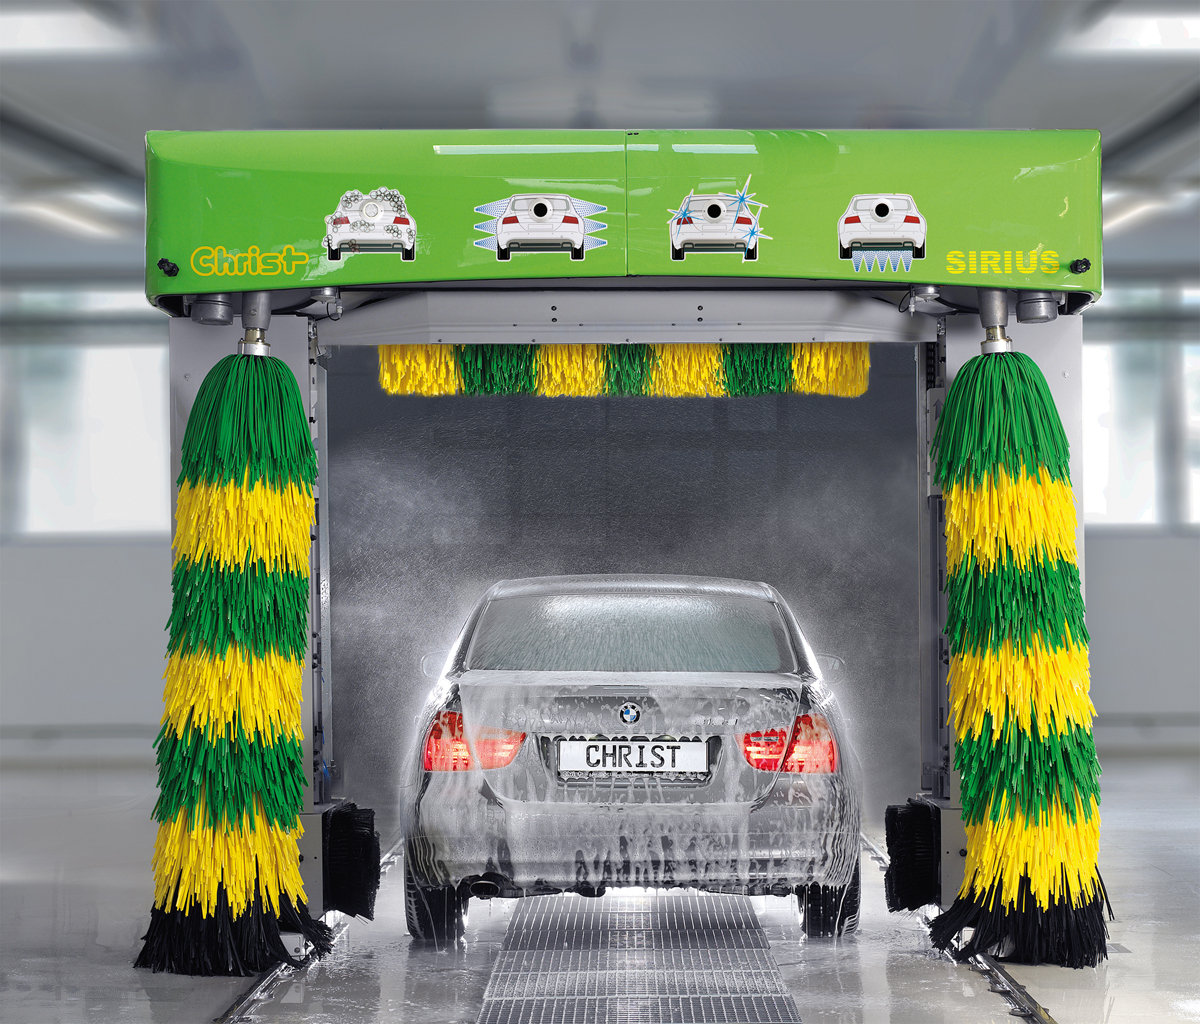 Car-Wash - Portique de lavage Christ Sirius